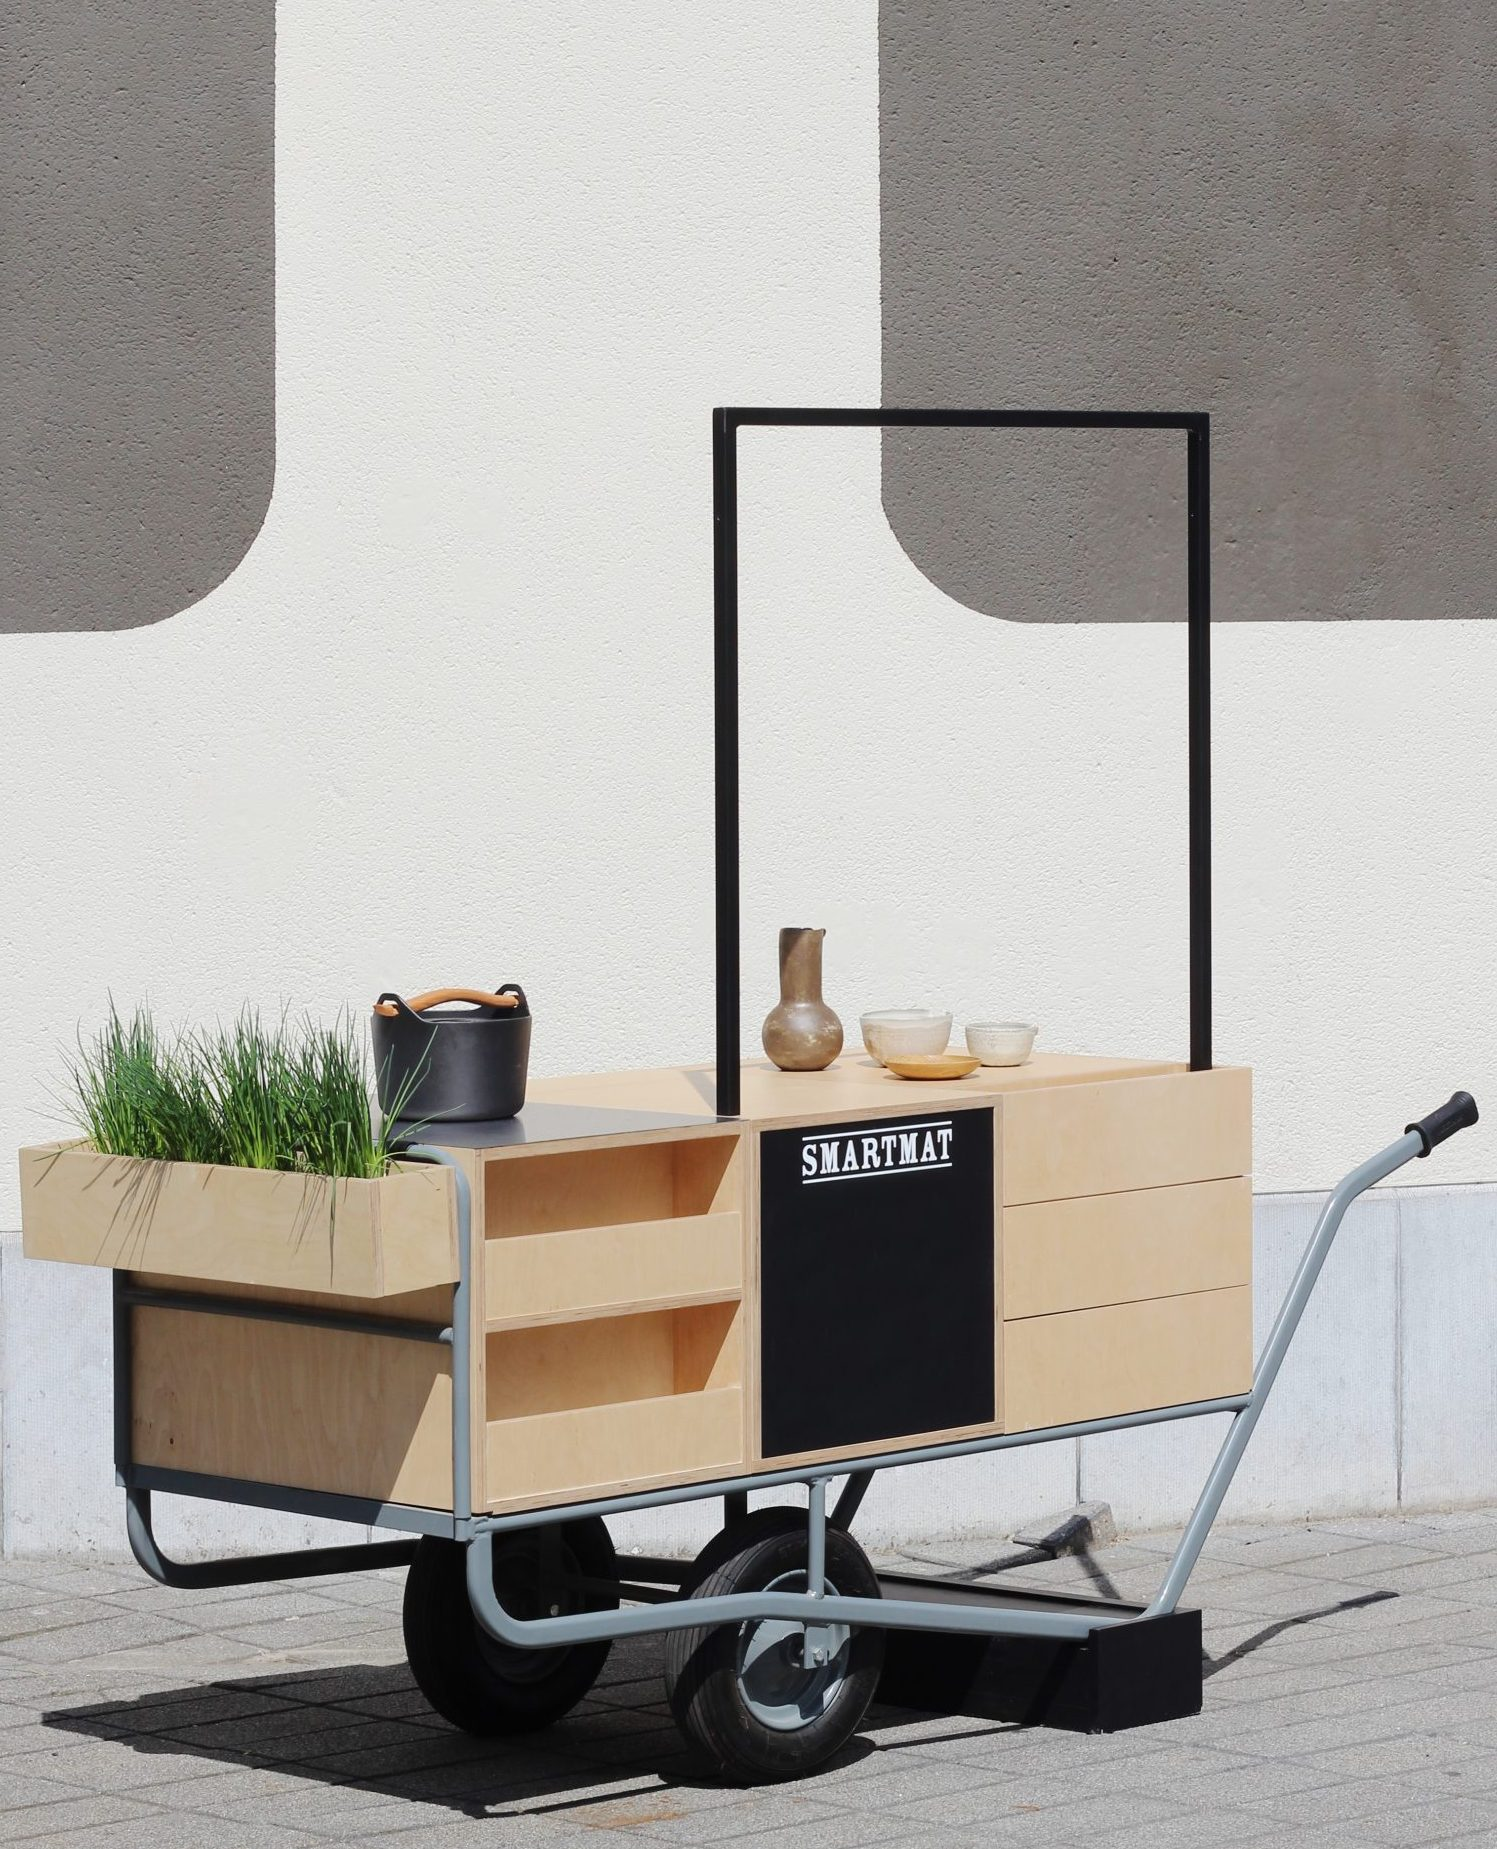 Nightingale Smartmat food cart